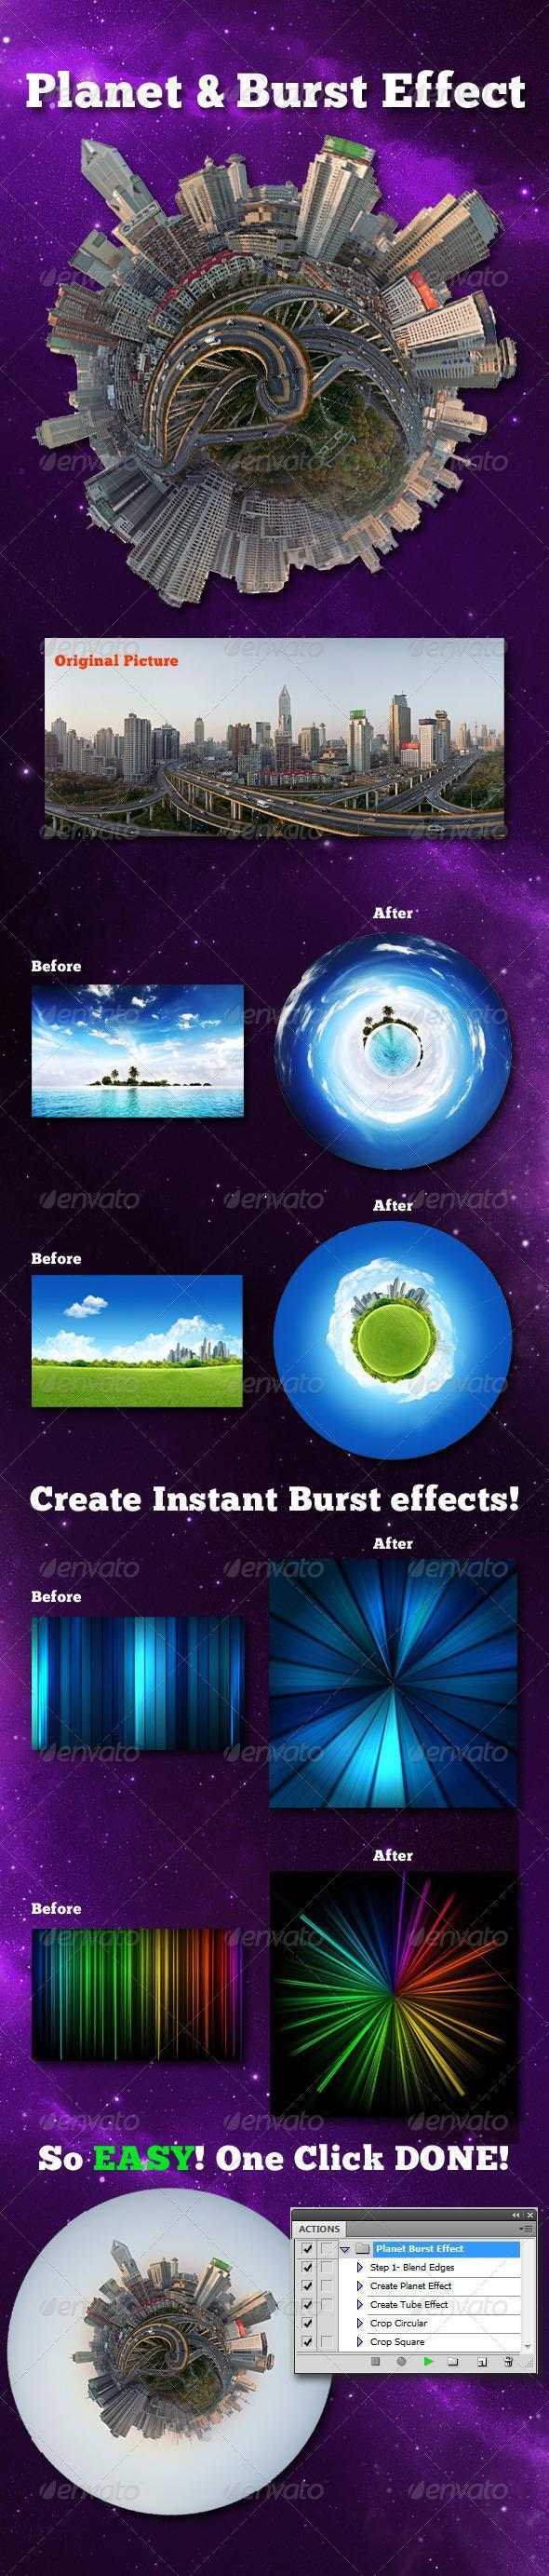 Little Planet Burst Effect Photoshop Creator